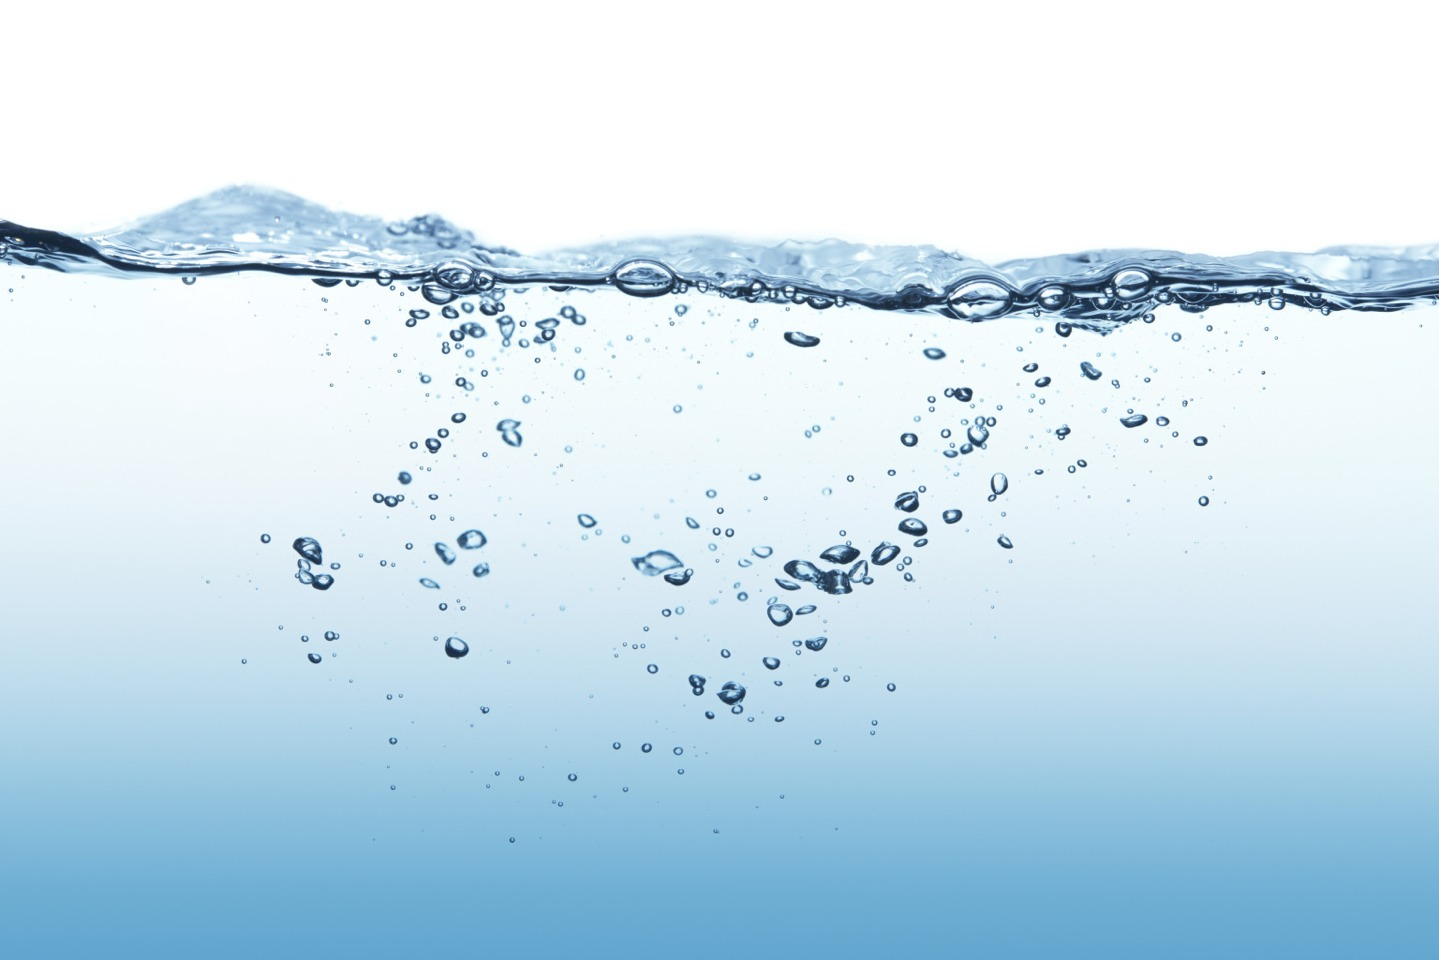 Step One: Hydrate!!  Water is very important for our bodies, and most of the time, bloating is due to dehydration. In times where we lack water, our bodies hold on to the water we currently have, causing bloating.